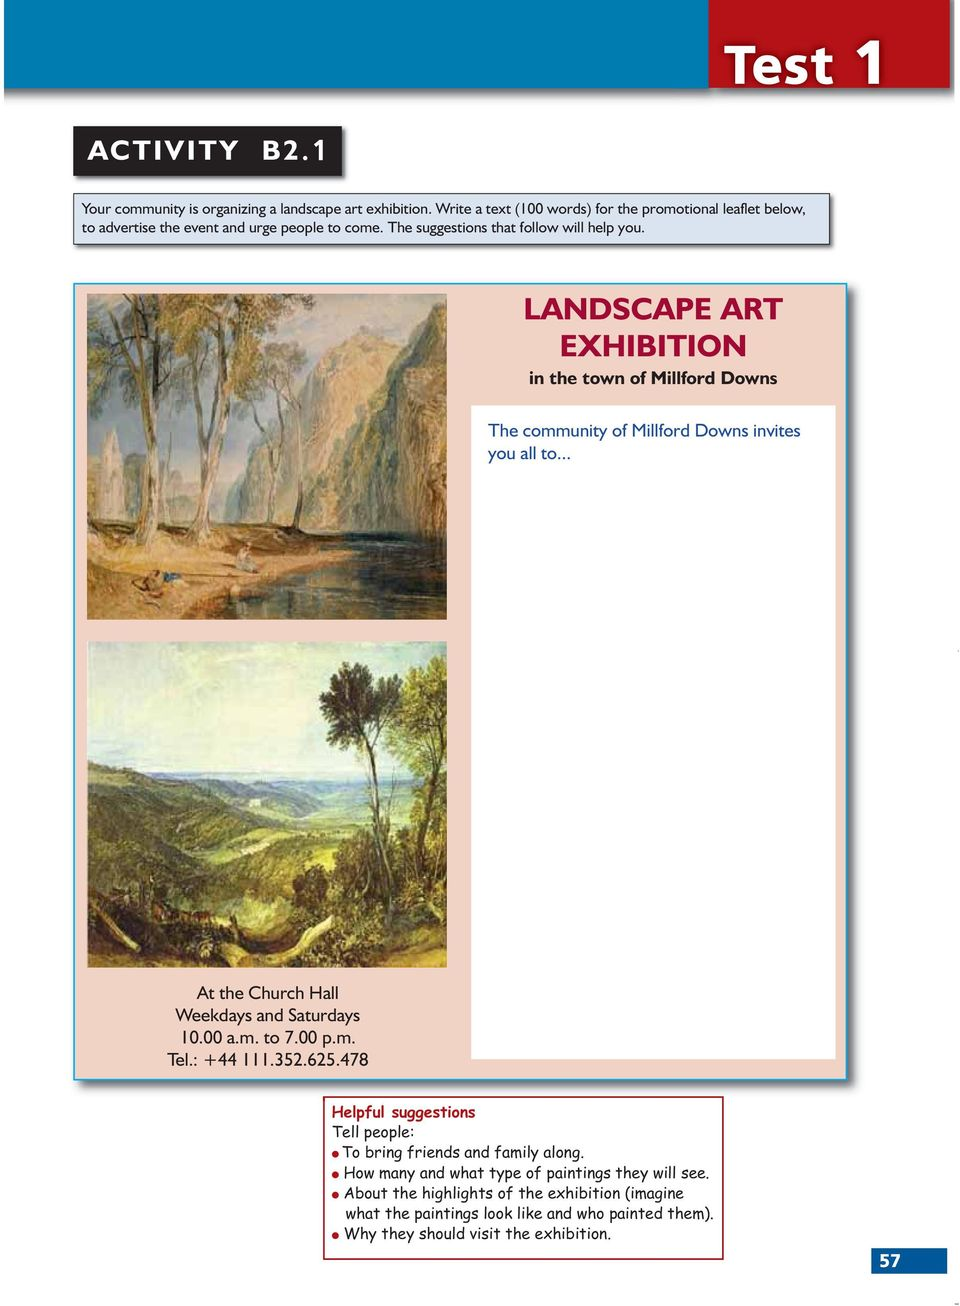 LANDSCAPE ART EXHIBITION in the town of Millford Downs The community of Millford Downs invites you all to... At the Church Hall Weekdays and Saturdays 10.00 a.m. to 7.00 p.